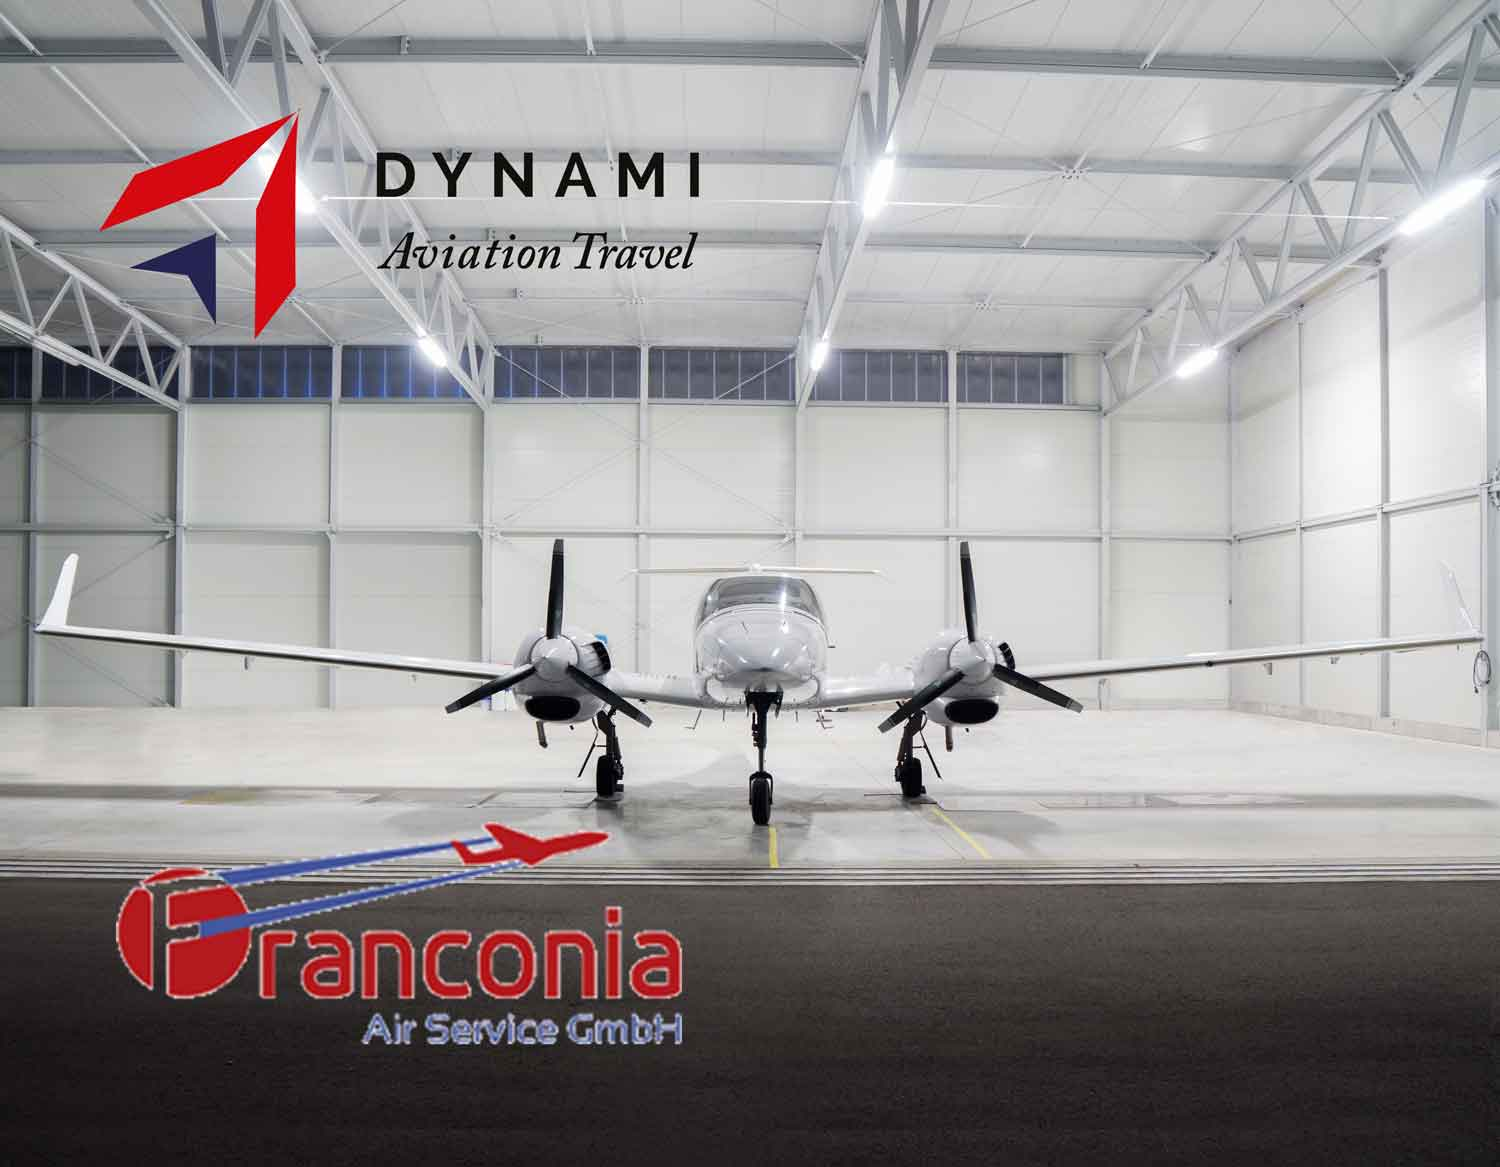 DYNAMI AVIATION TRAVEL SIGNS A NEW PARTNERSHIP WITH FRANCONIA AIR SERVICE